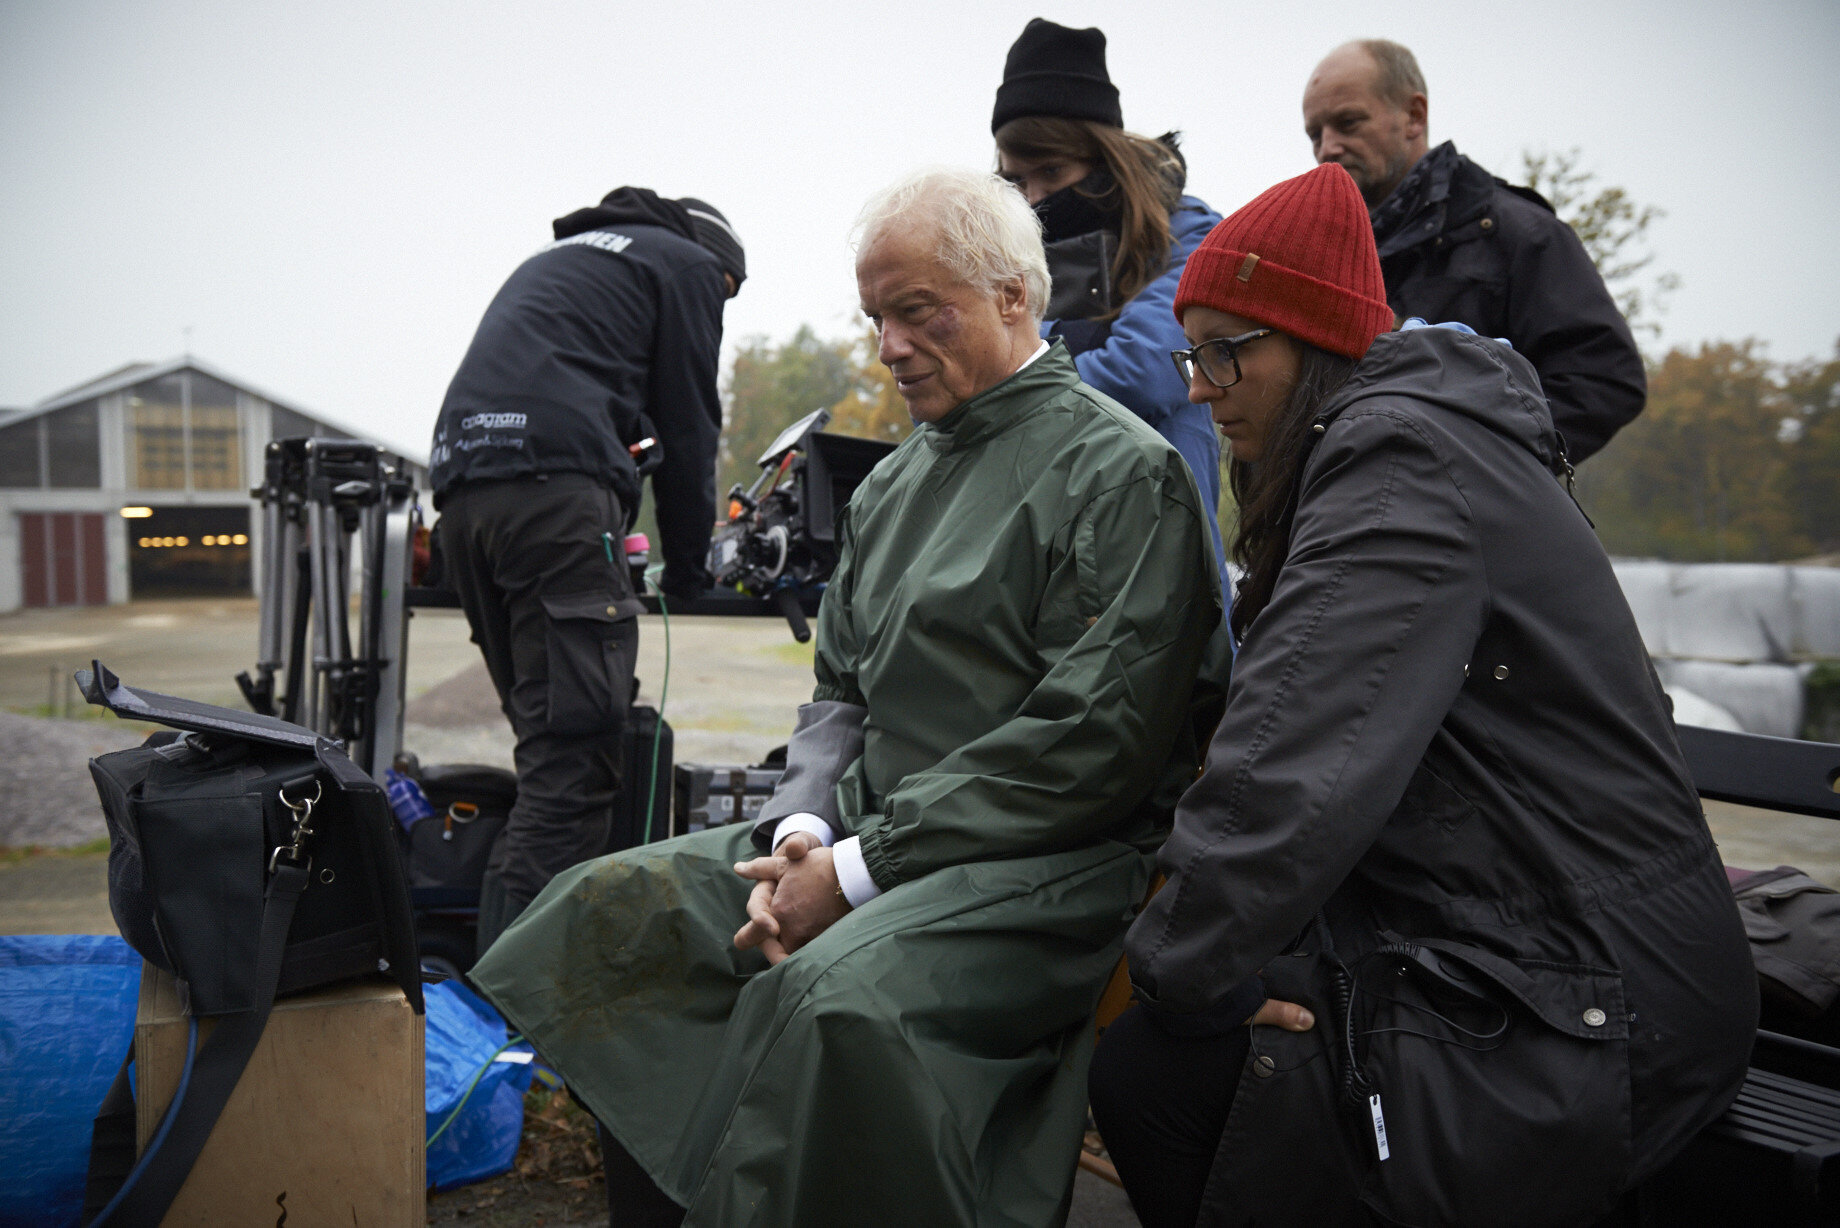 """Director Thérèse Ahlbeck and actor Loa Falkman on set of """"Lost in Stångby"""" Photo: Peo Olsson. Tiny Lumberjack copyright."""